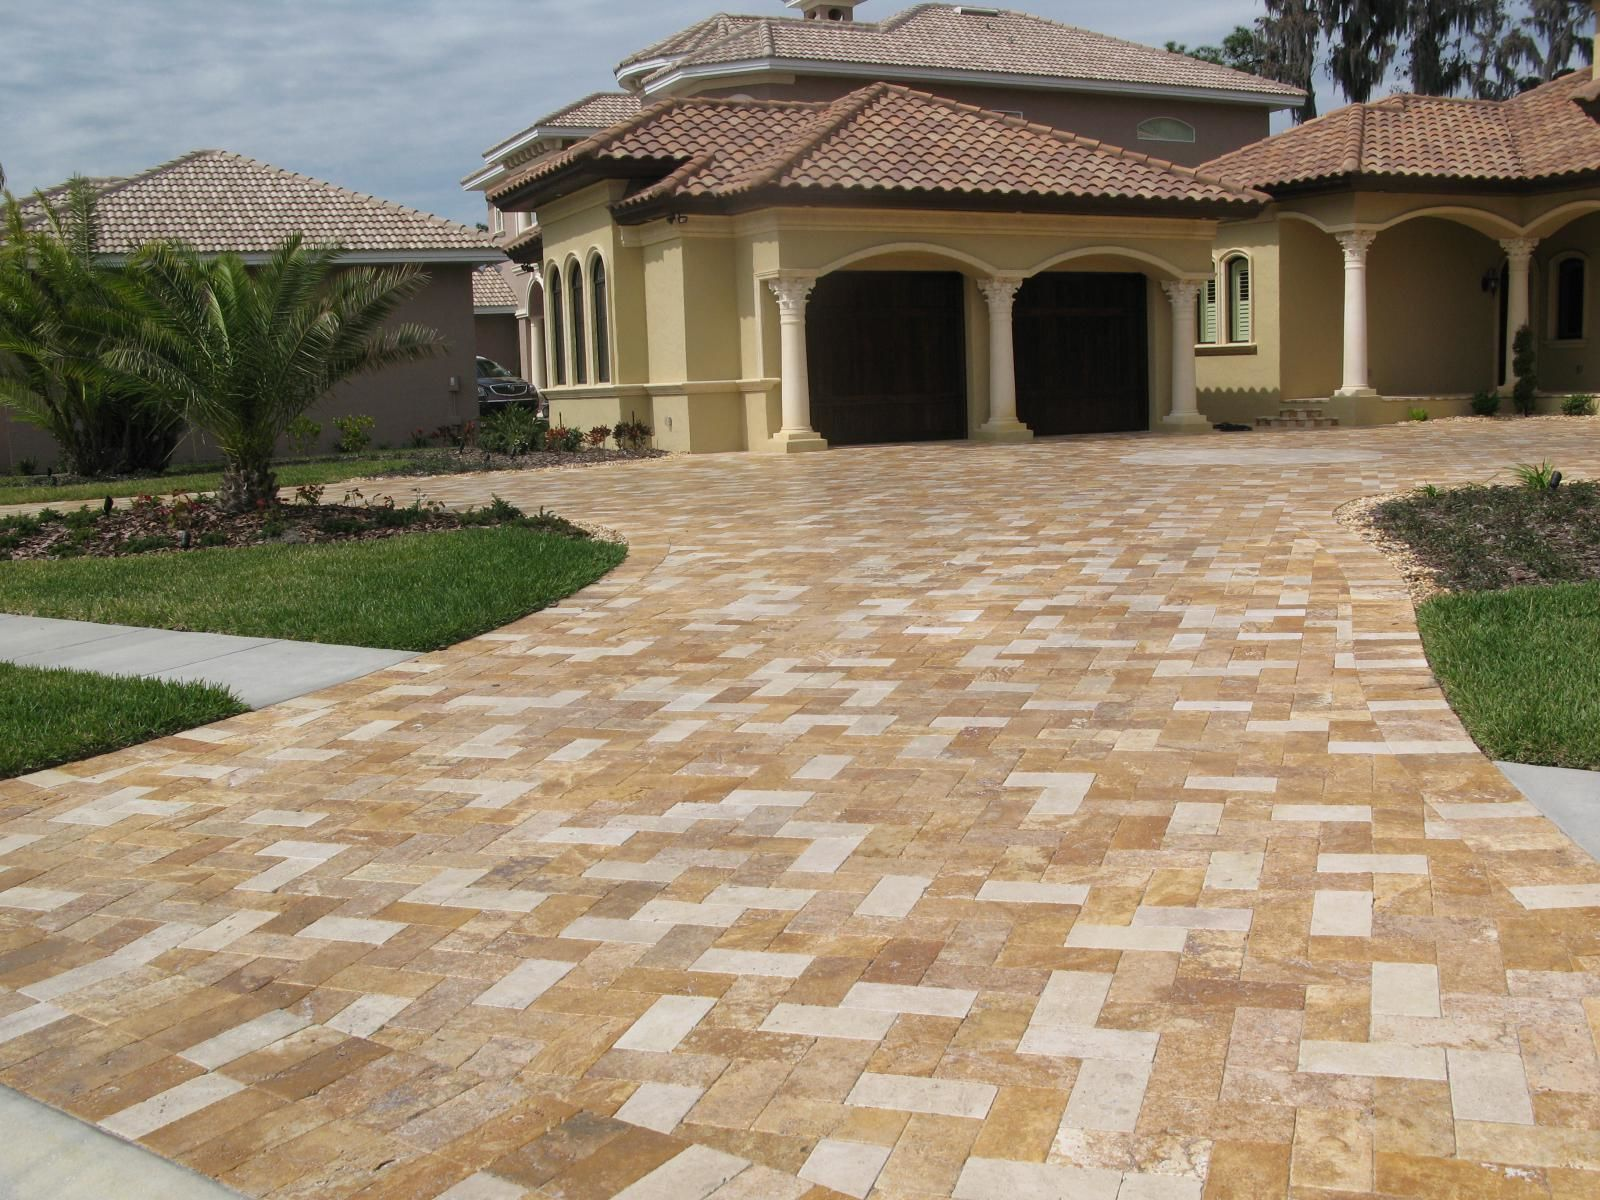 Luxurious Home Driveway Designs Autodesk Online Gallery